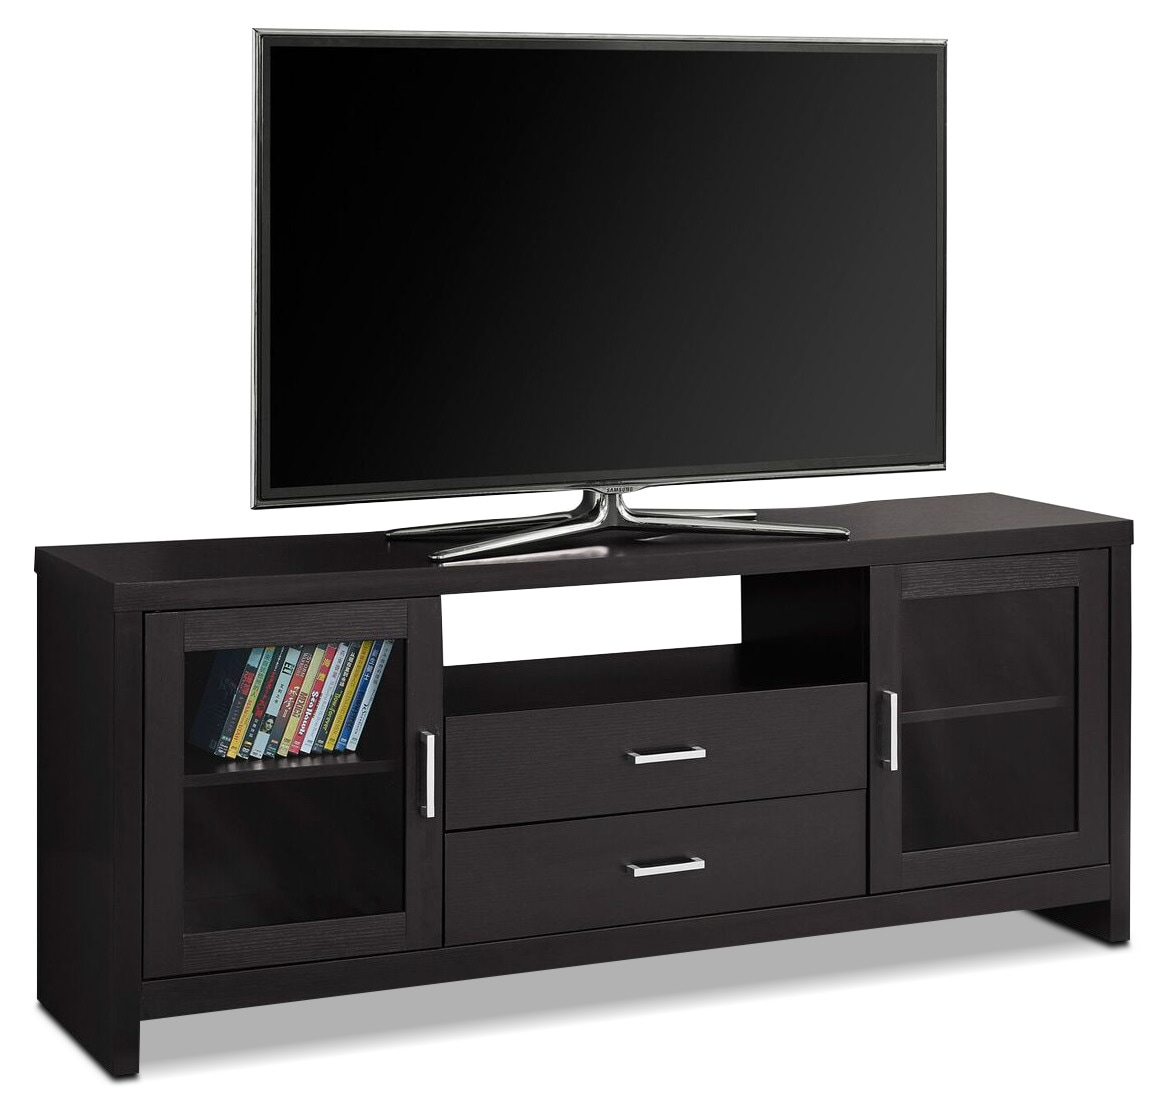 tv schrank cappuccino m bel design idee f r sie. Black Bedroom Furniture Sets. Home Design Ideas